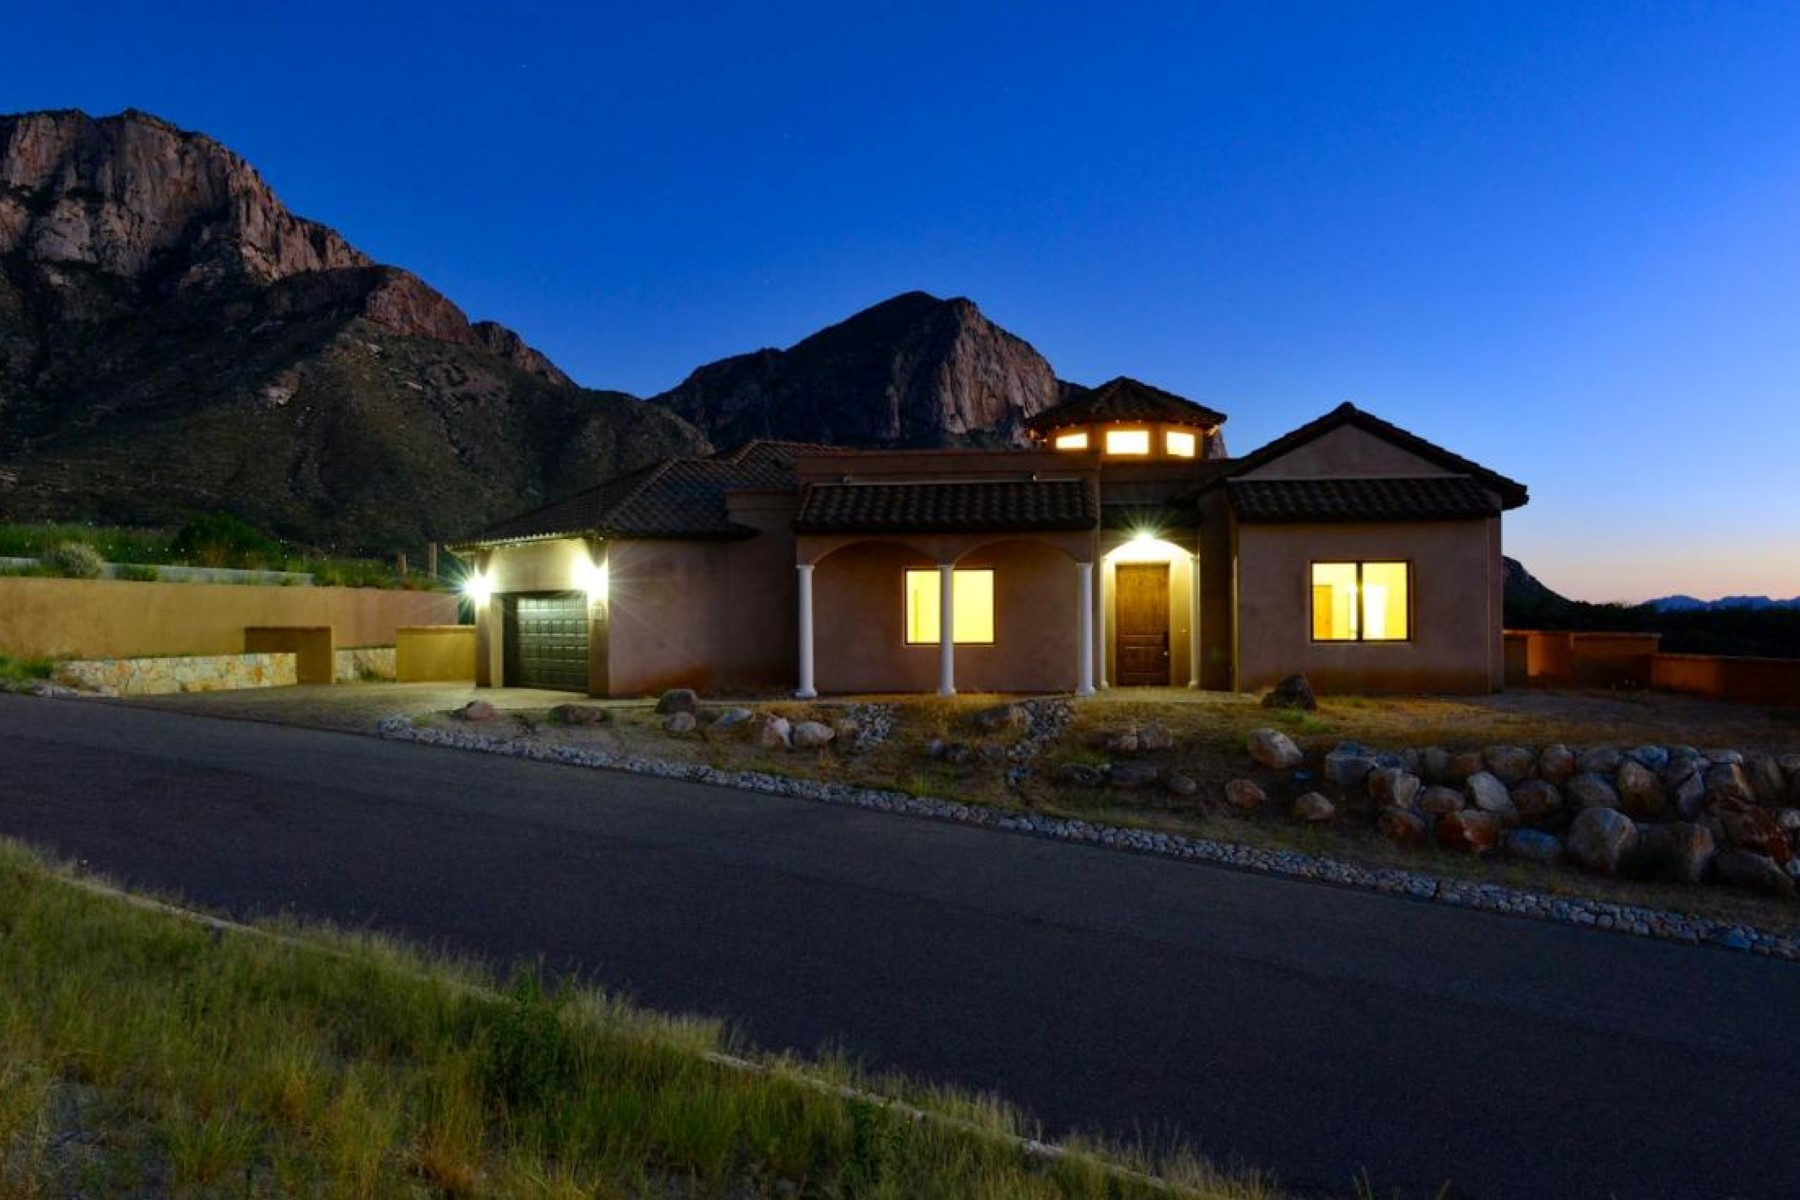 Single Family Home for Sale at Newly Constructed Home With Breathtaking Unobstructed Pusch Ridge Views 2520 E Delia Roccia Court Oro Valley, Arizona 85737 United States